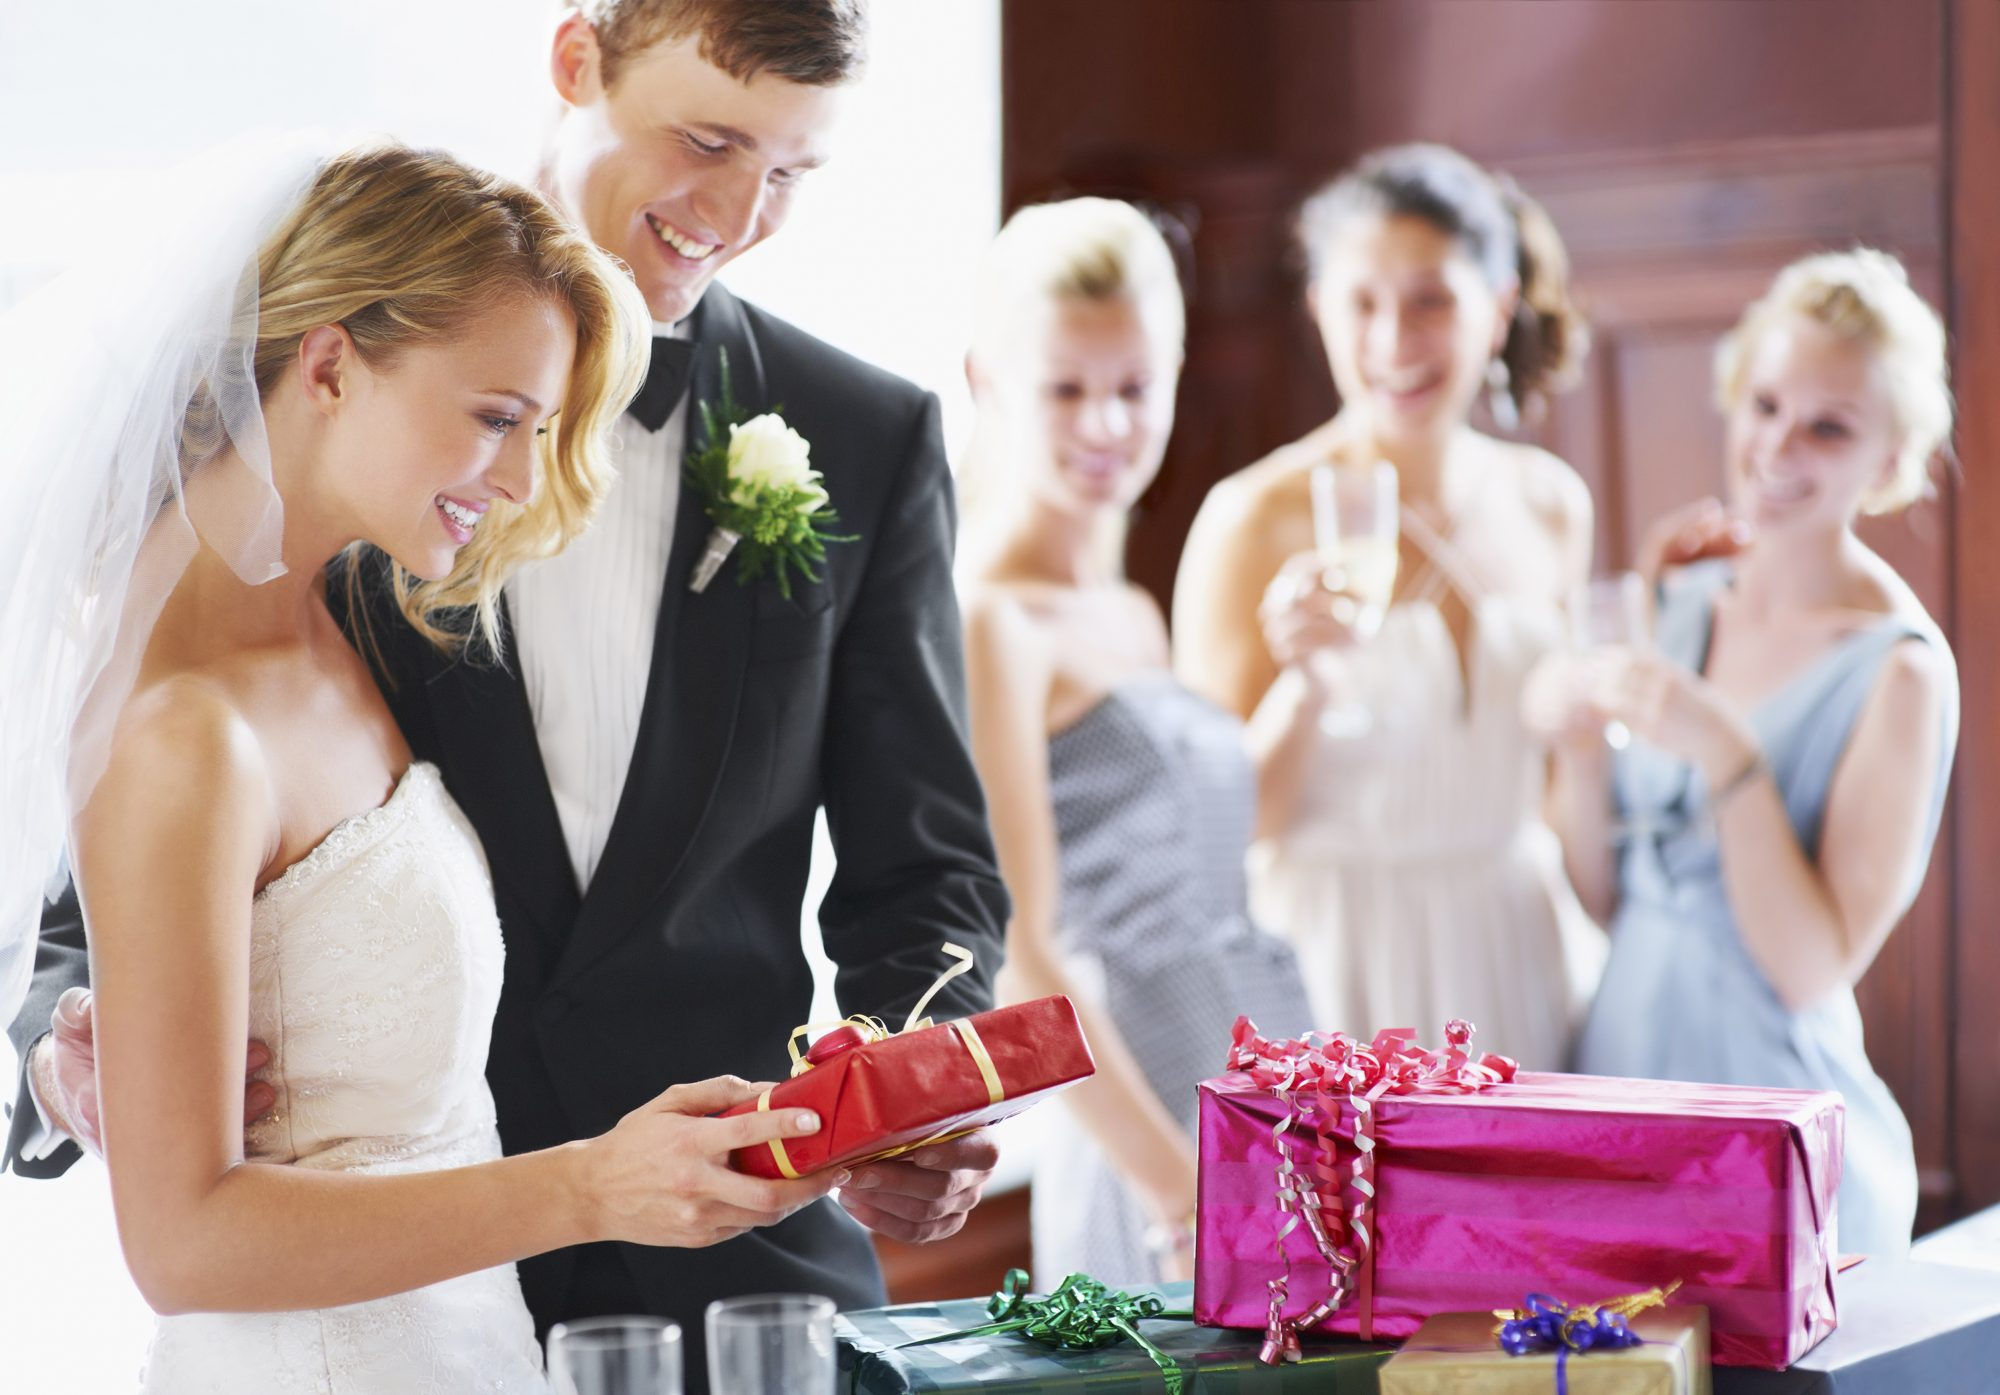 The Number One Thing Couples Regret Not Registering for at Their Wedding